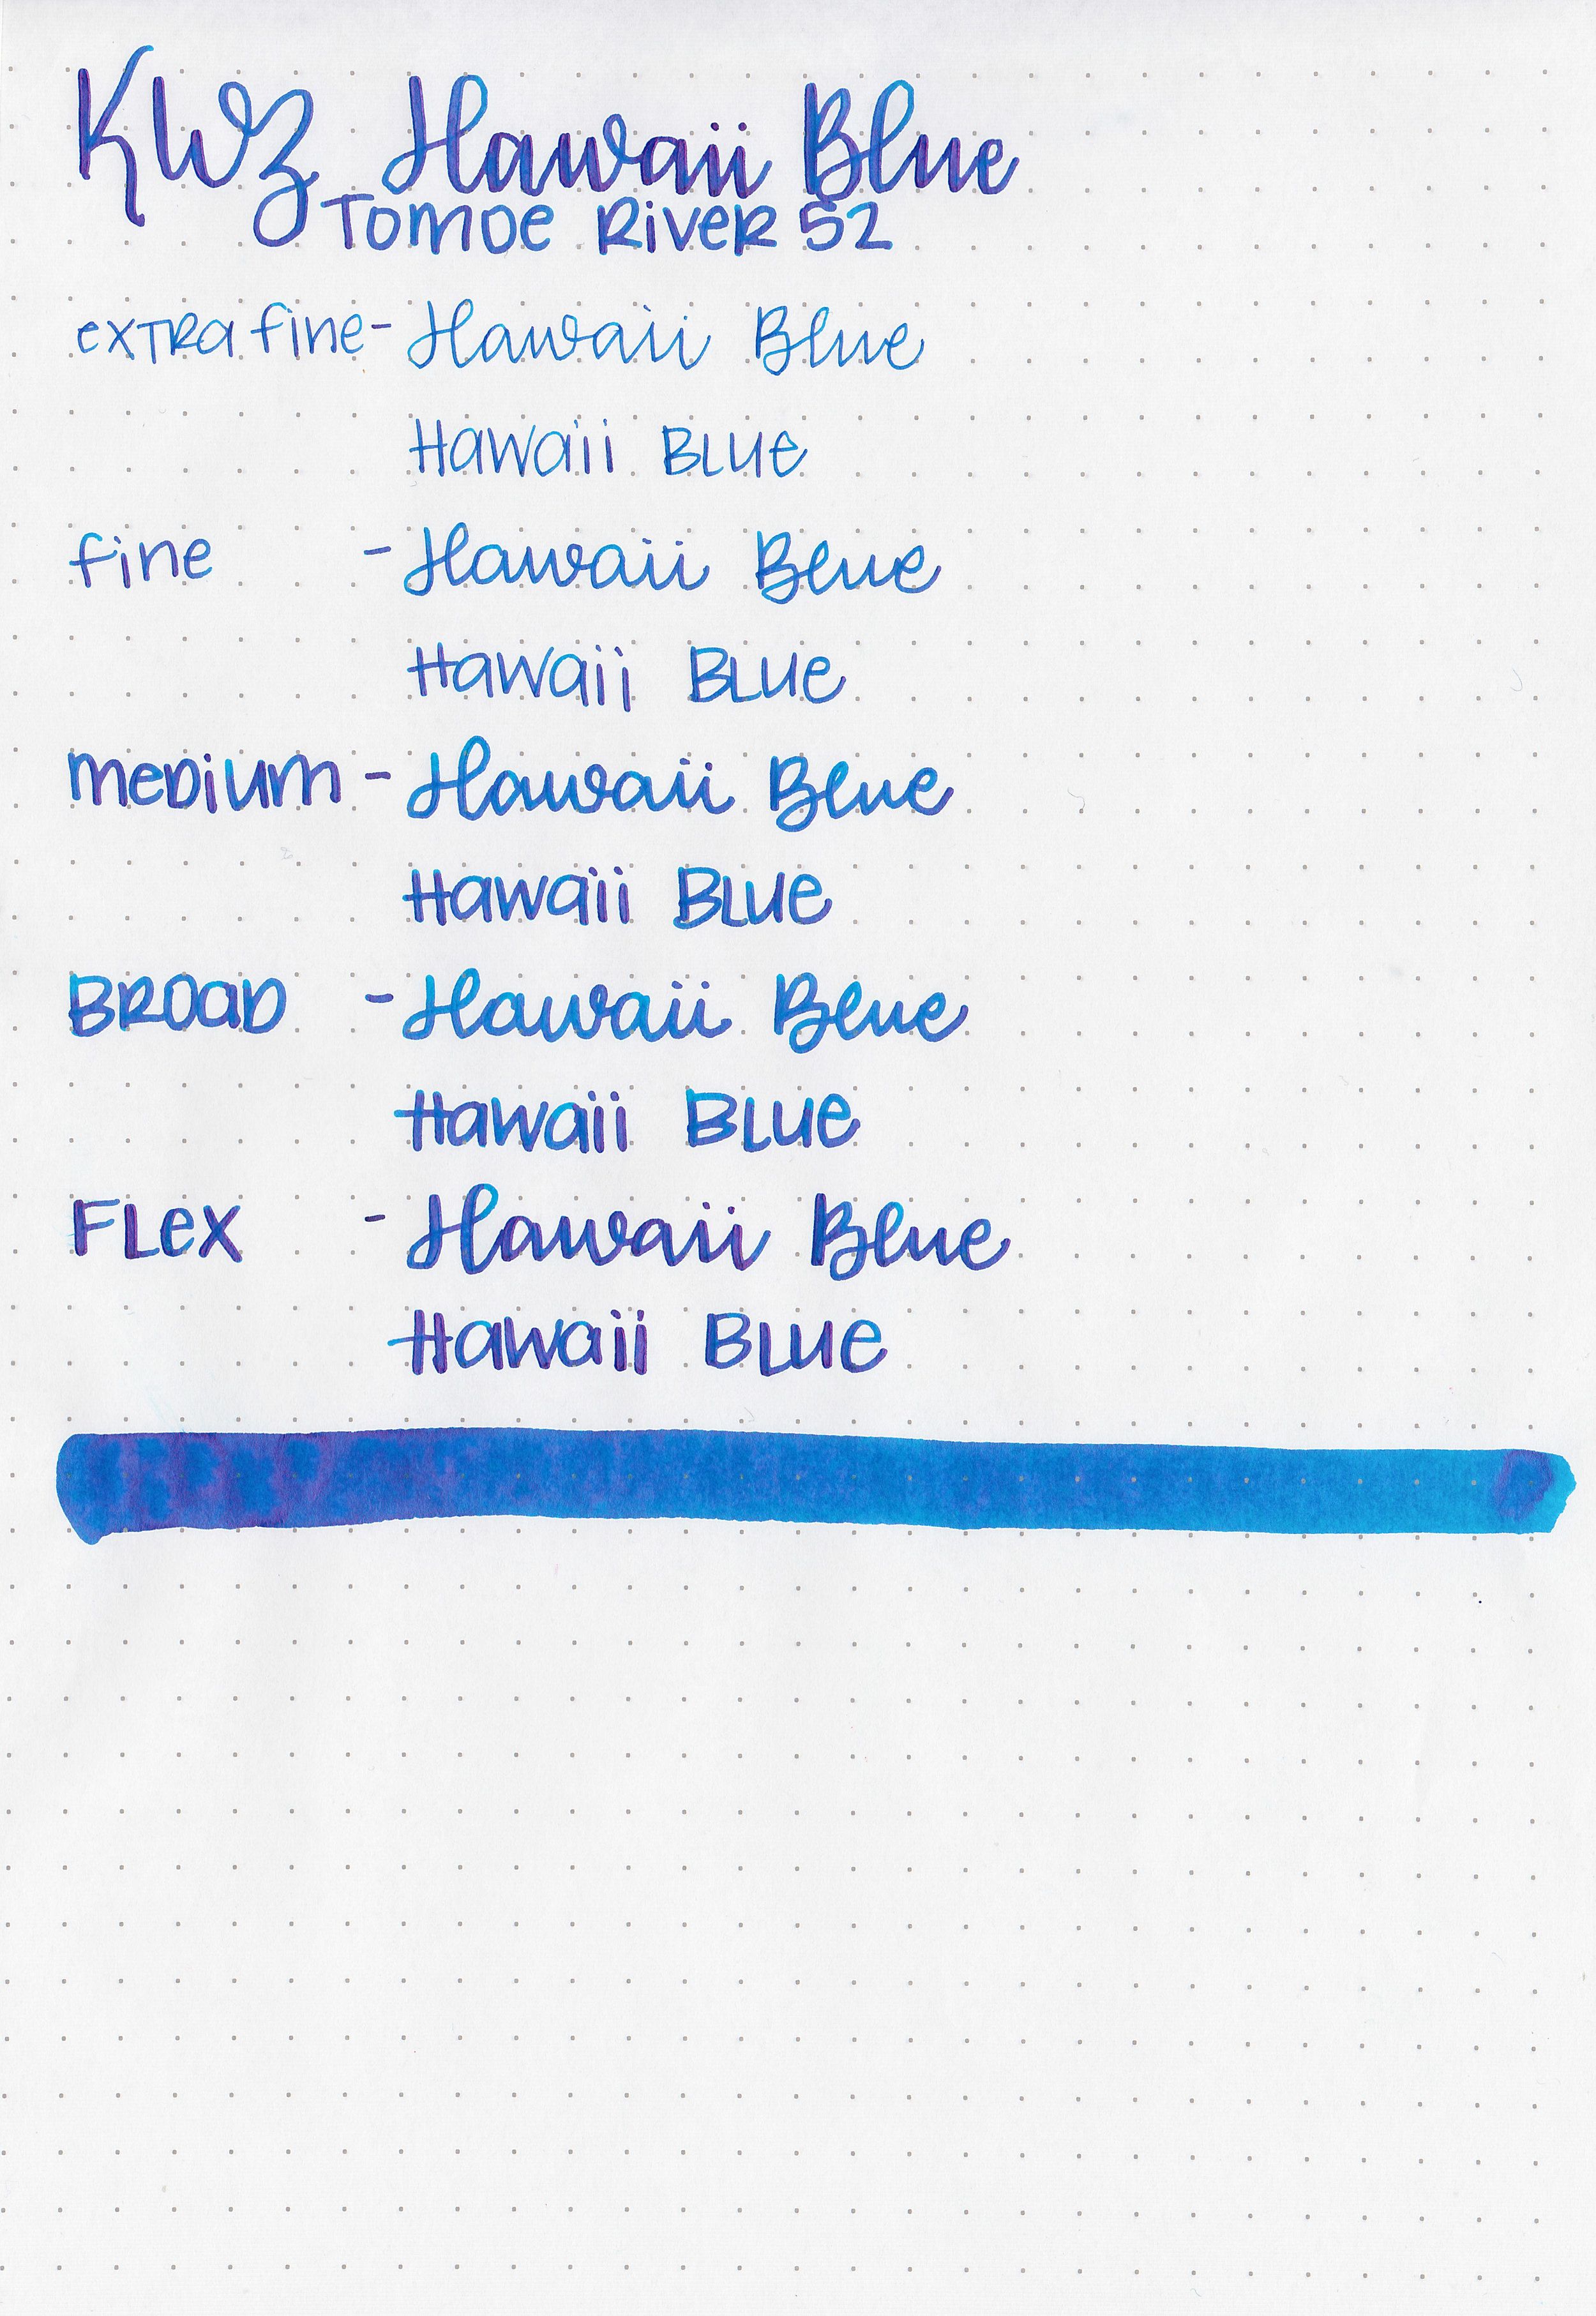 kwz-hawaii-blue-5.jpg